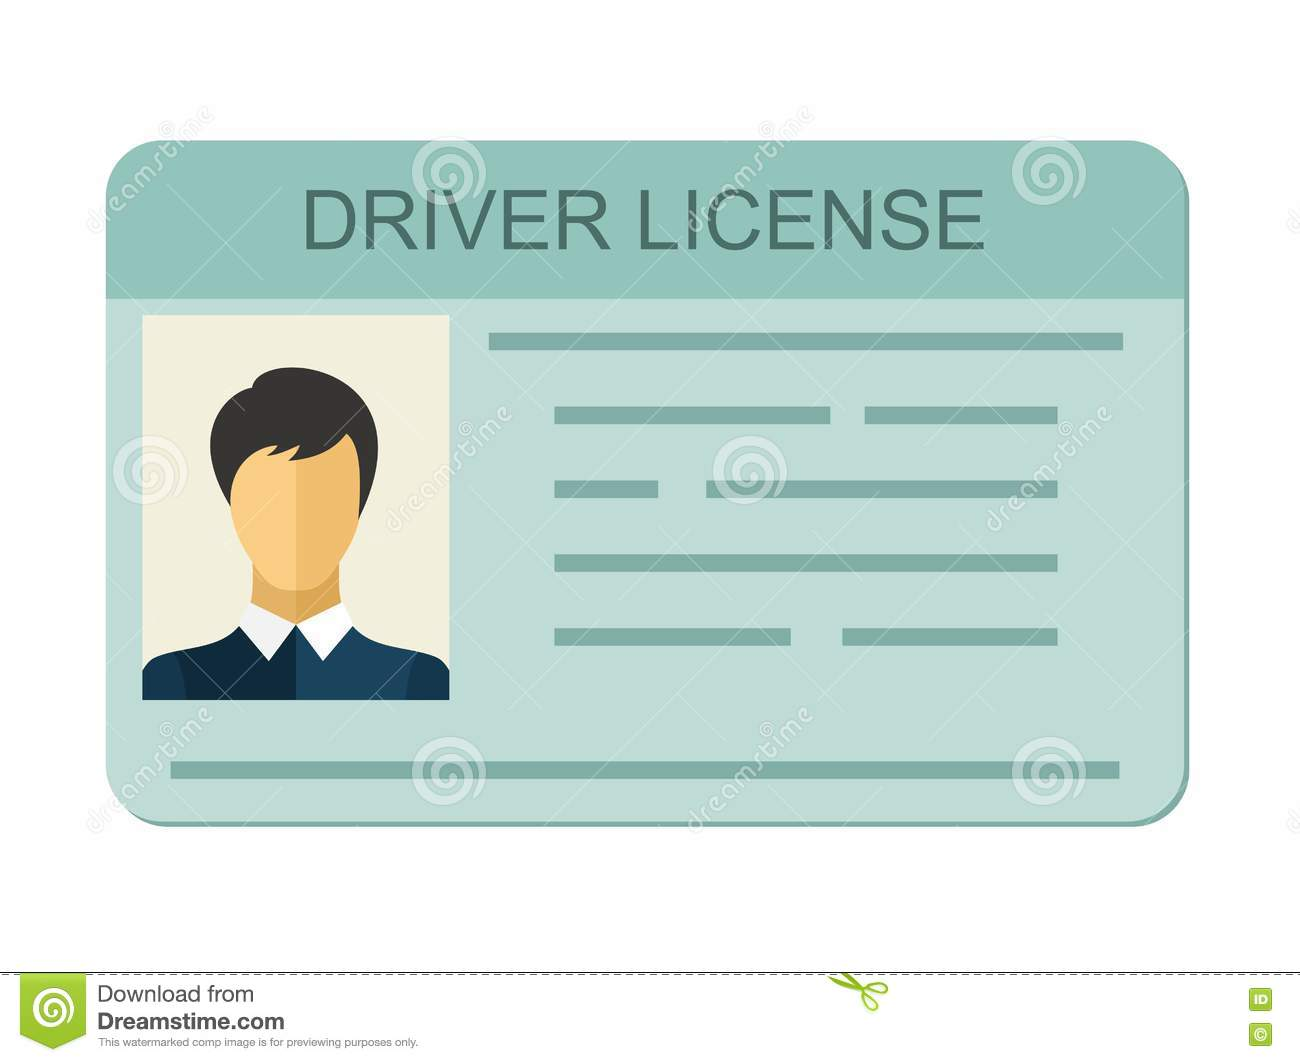 Picture Stock With In Of Car Flat Illustration License Style Driver 72247915 - Icon Vehicle White Isolated Photo Background Identification On Identity